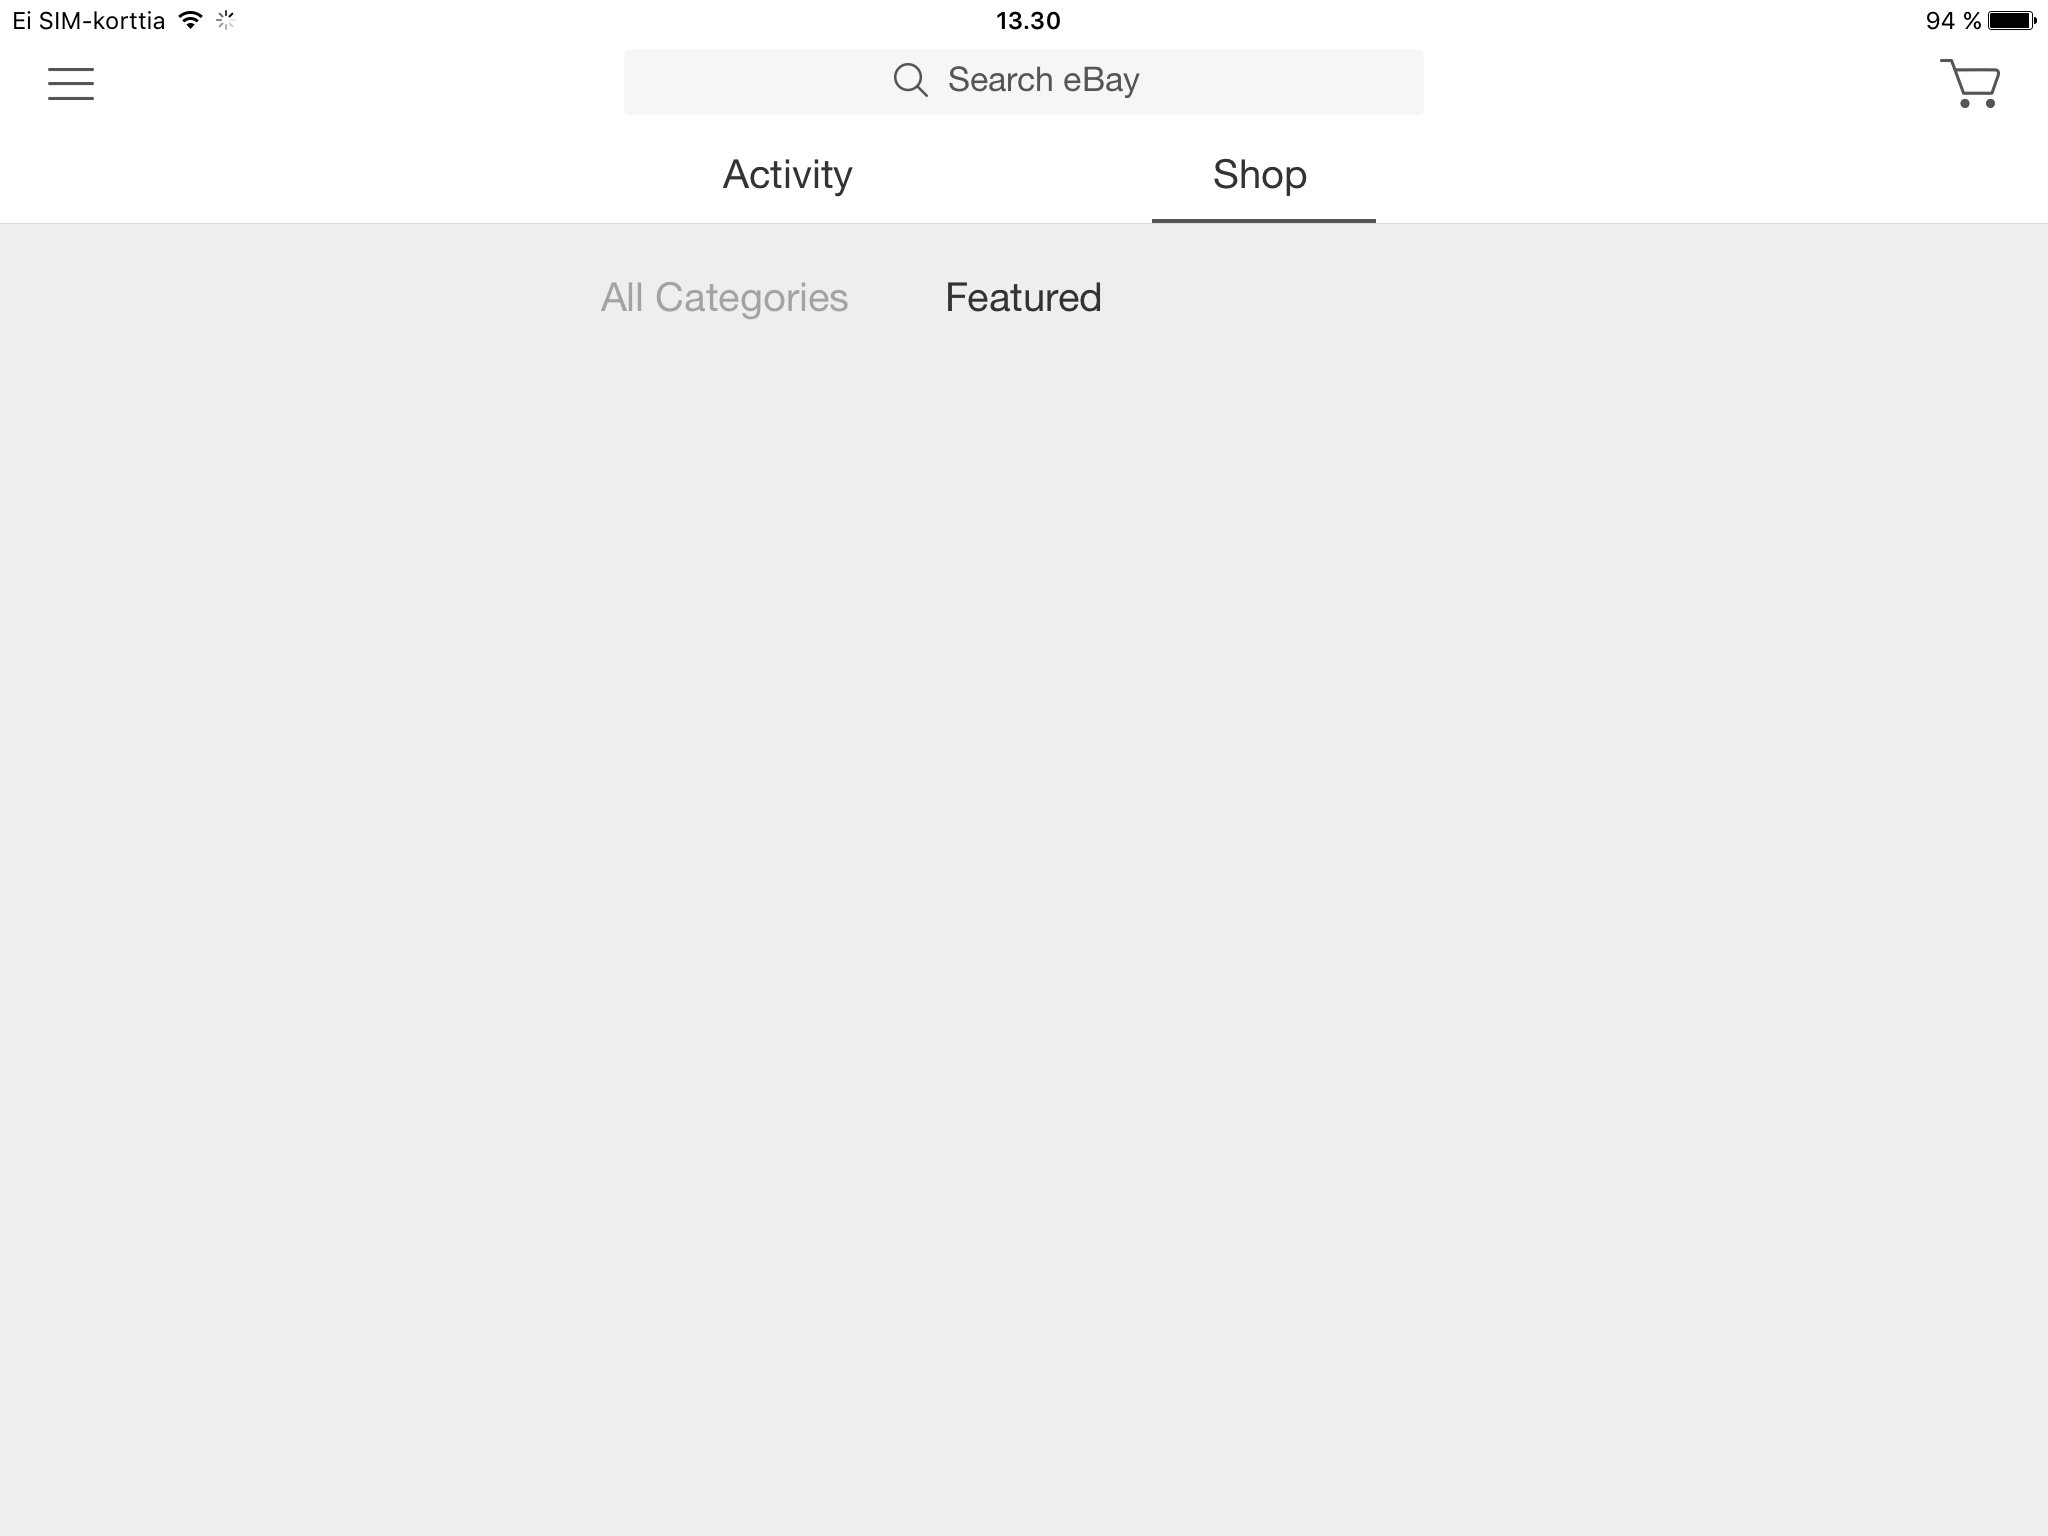 Ebay Ipad App Not Working Or Letting Me Sign In The Ebay Community